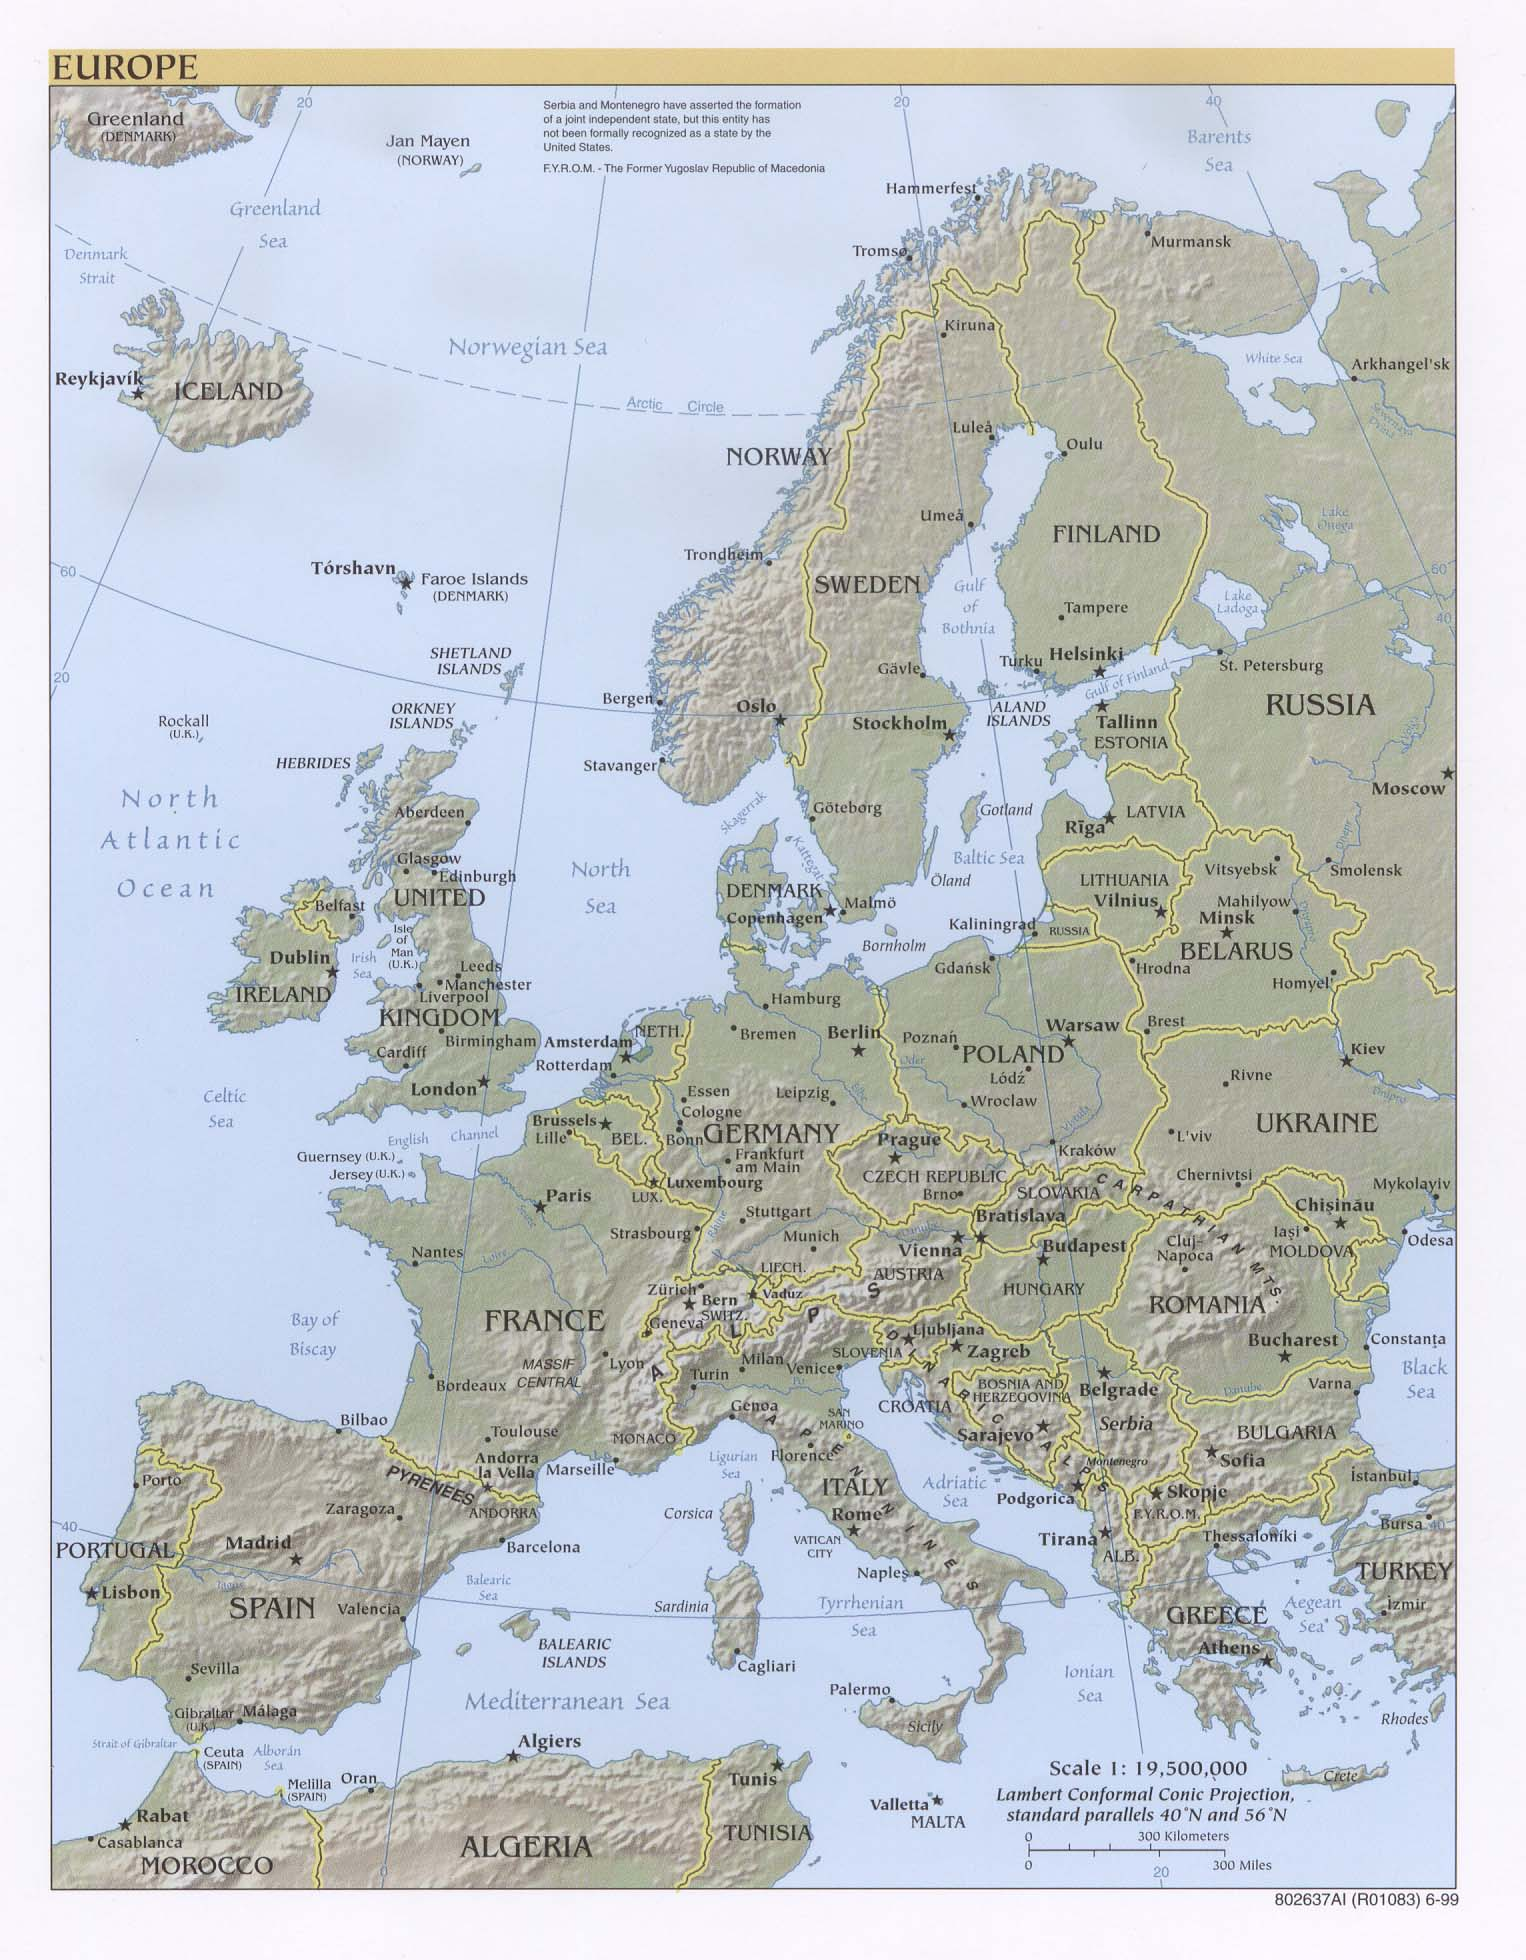 Europe topography 1999